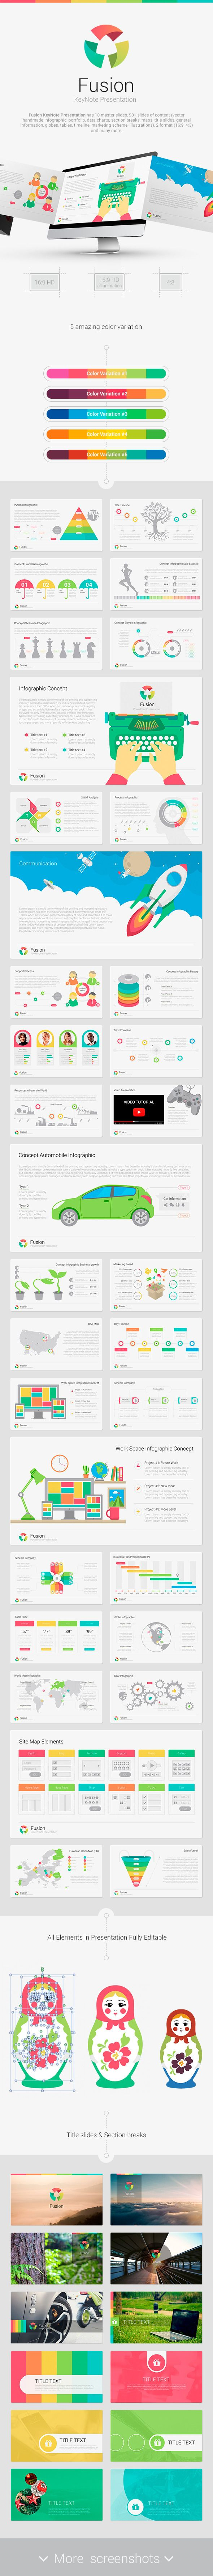 best design presentation images on pinterest